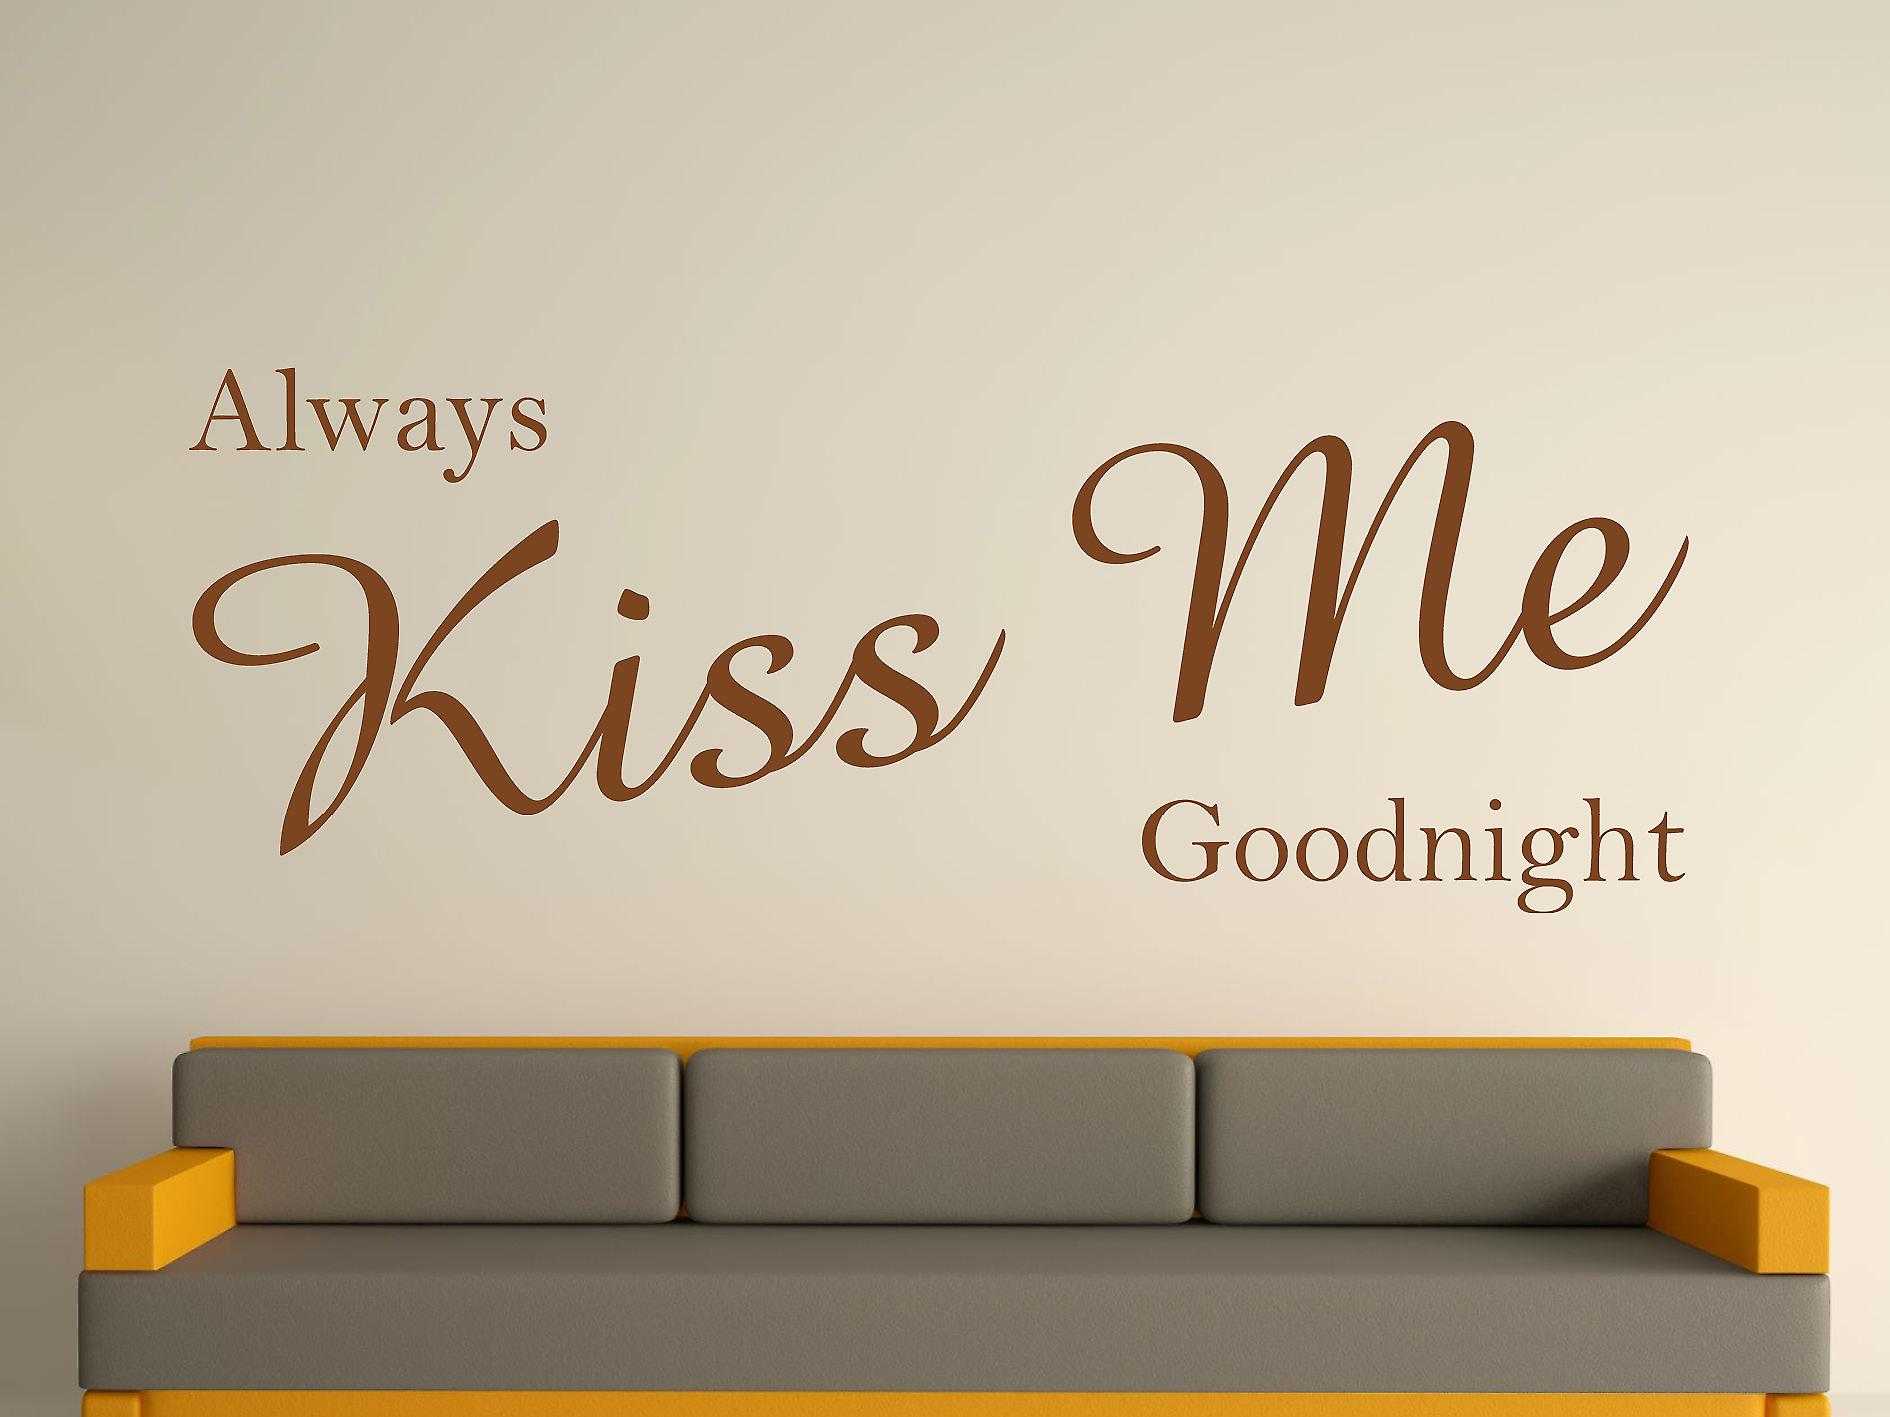 Always Kiss Me Goodnight Wall Art Sticker - Brown